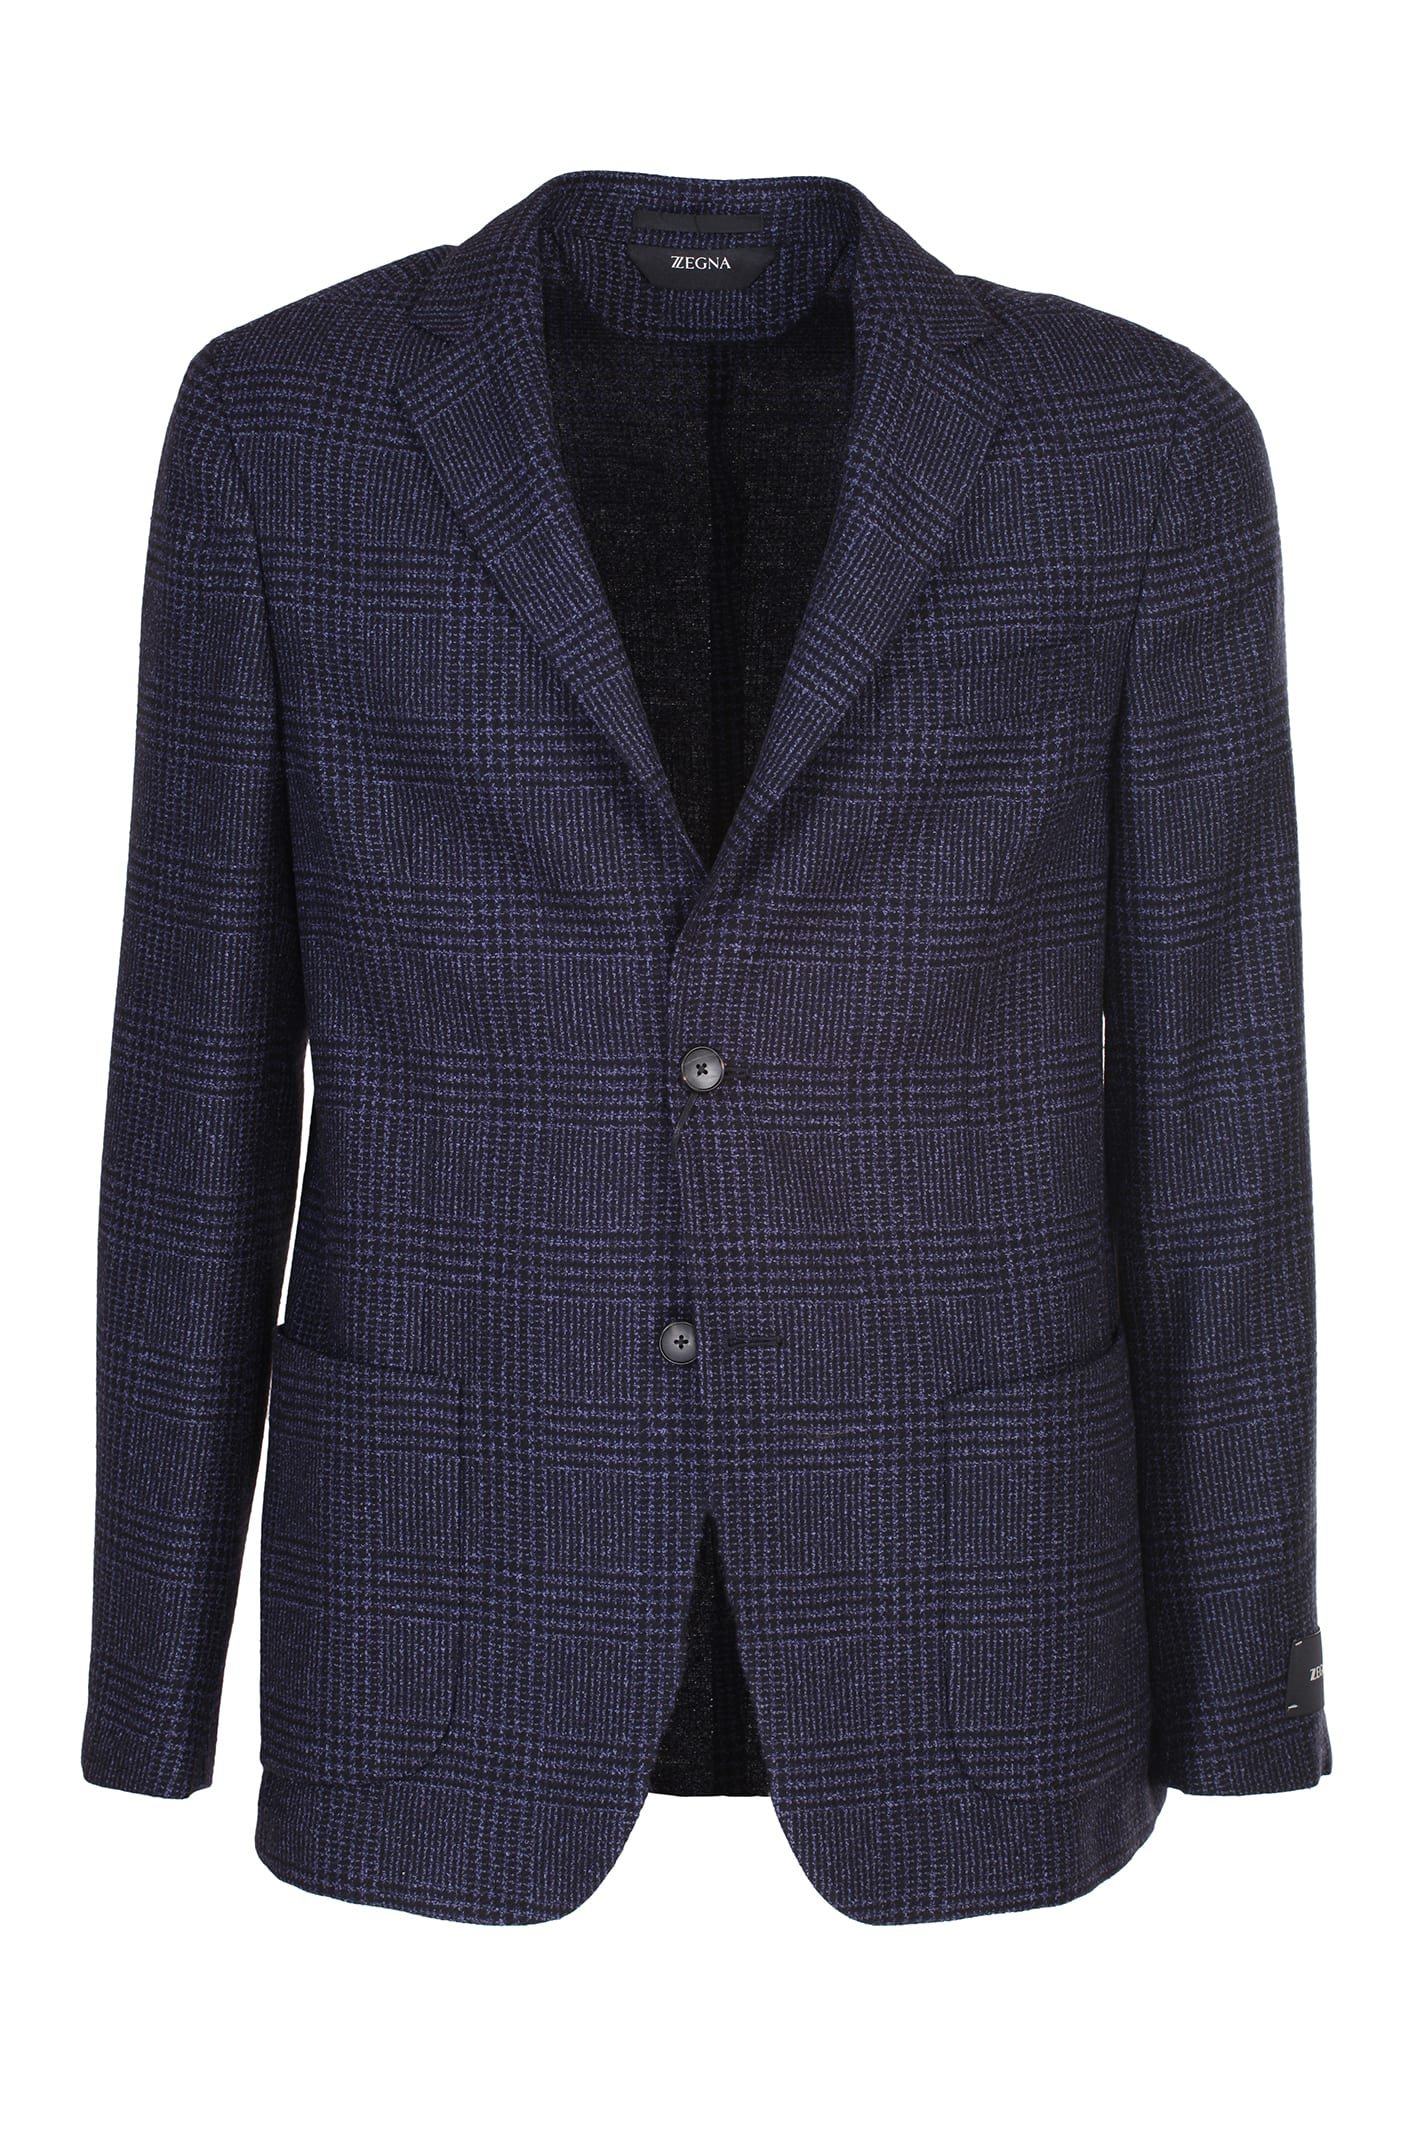 Z Zegna Cottons SINGLE-BREASTED JACKET, TWO BUTTONS IN BLUE PRINCE OF WALES